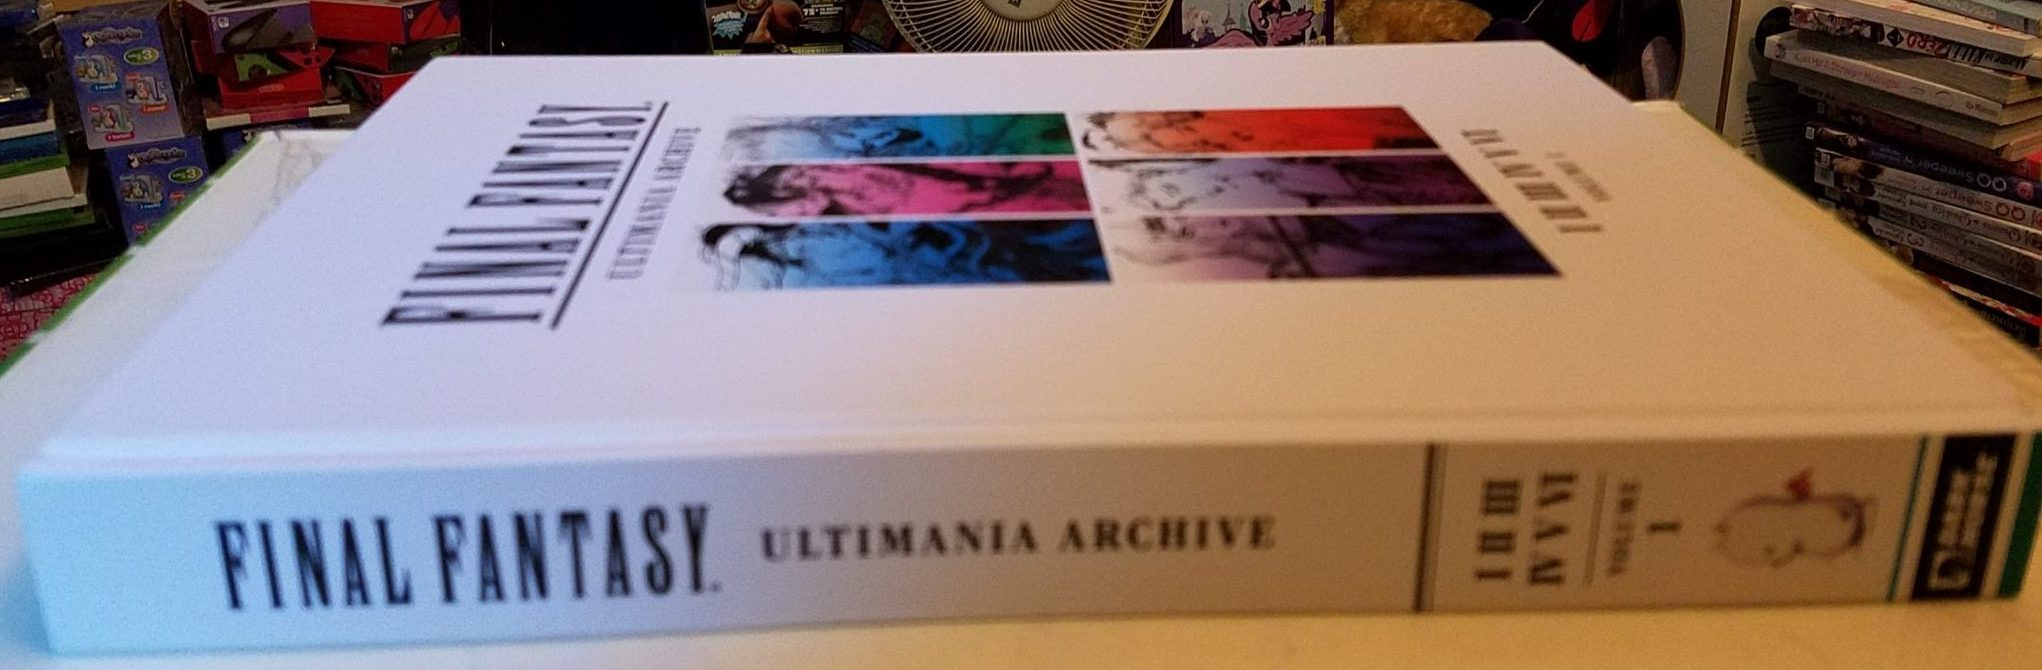 Final Fantasy Ultimania Archive 1 Spine